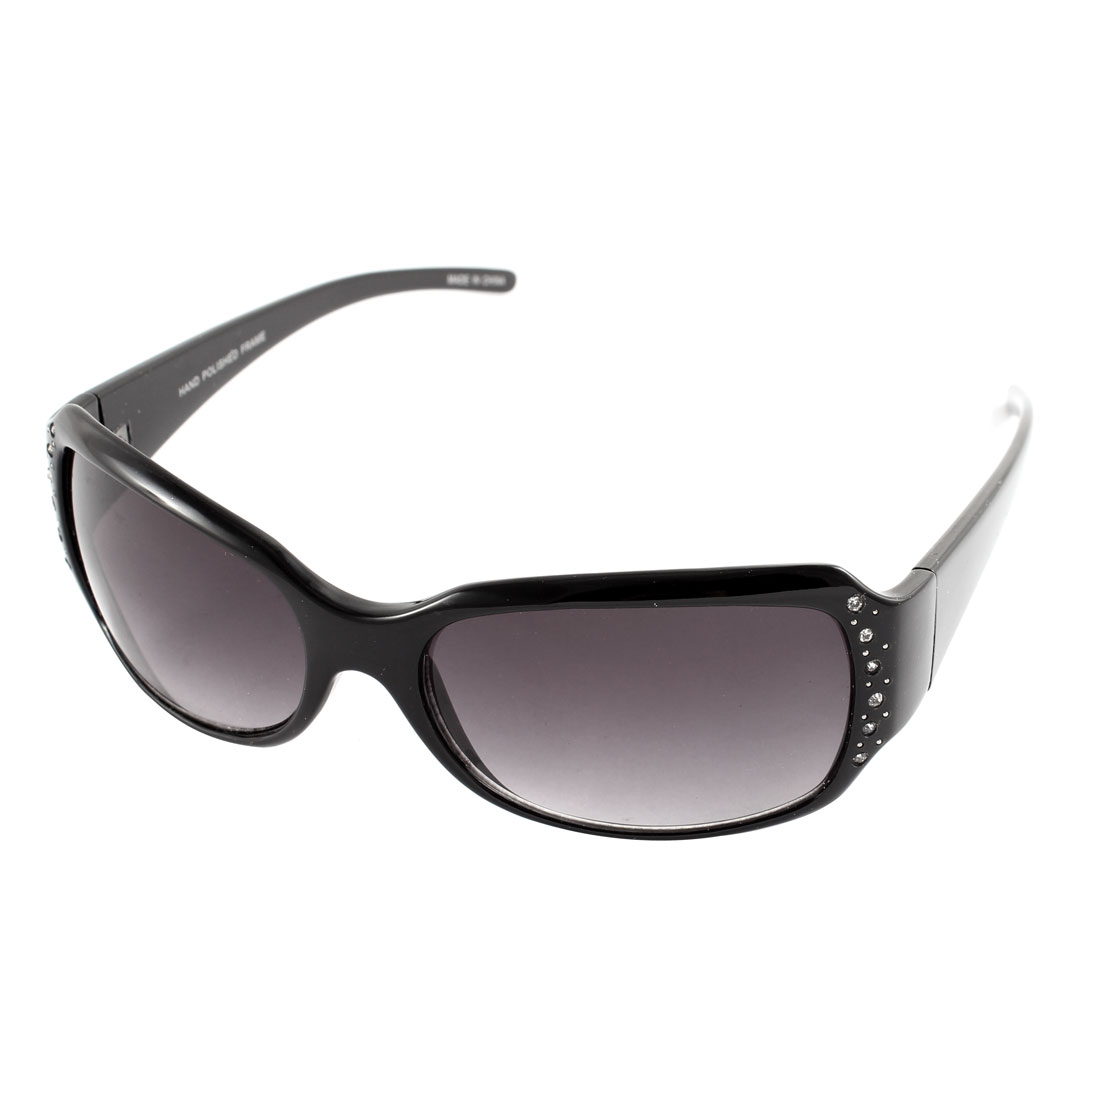 Lady Outdoor Driving Sun Protective Glasses Sunglasses Eyewear Black